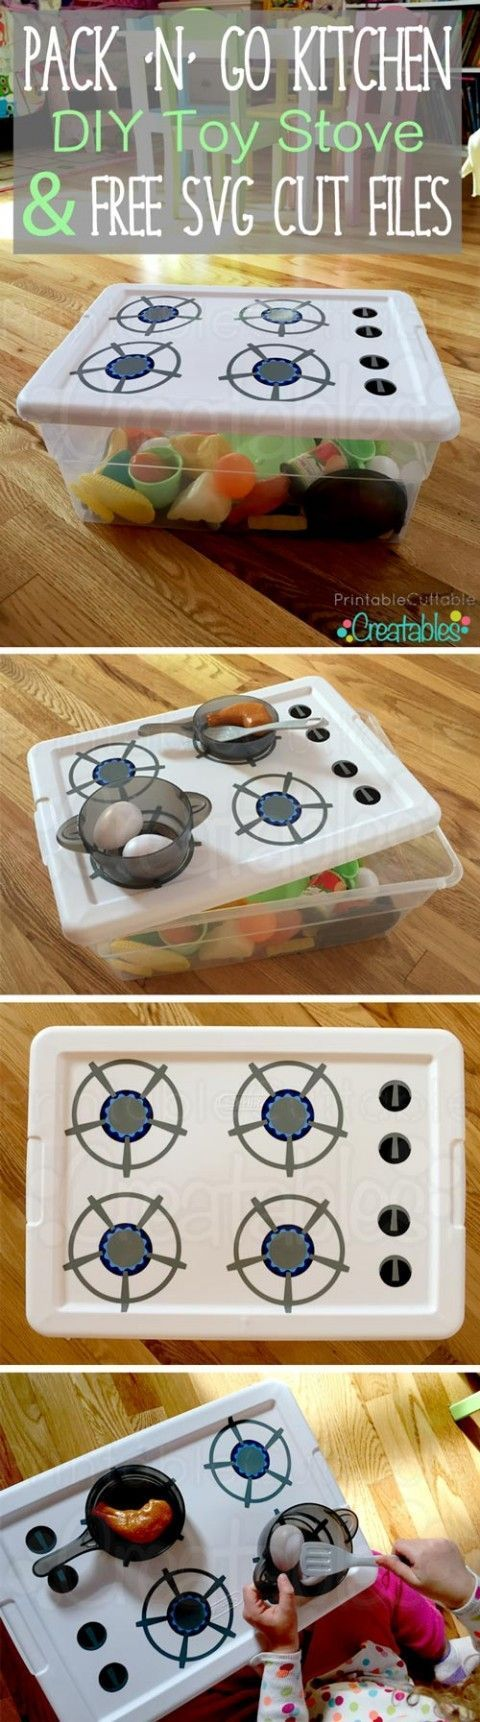 Photo of Pack 'N' Go Kitchen DIY Toy Stove Tutorial + Free SVG Cut Files